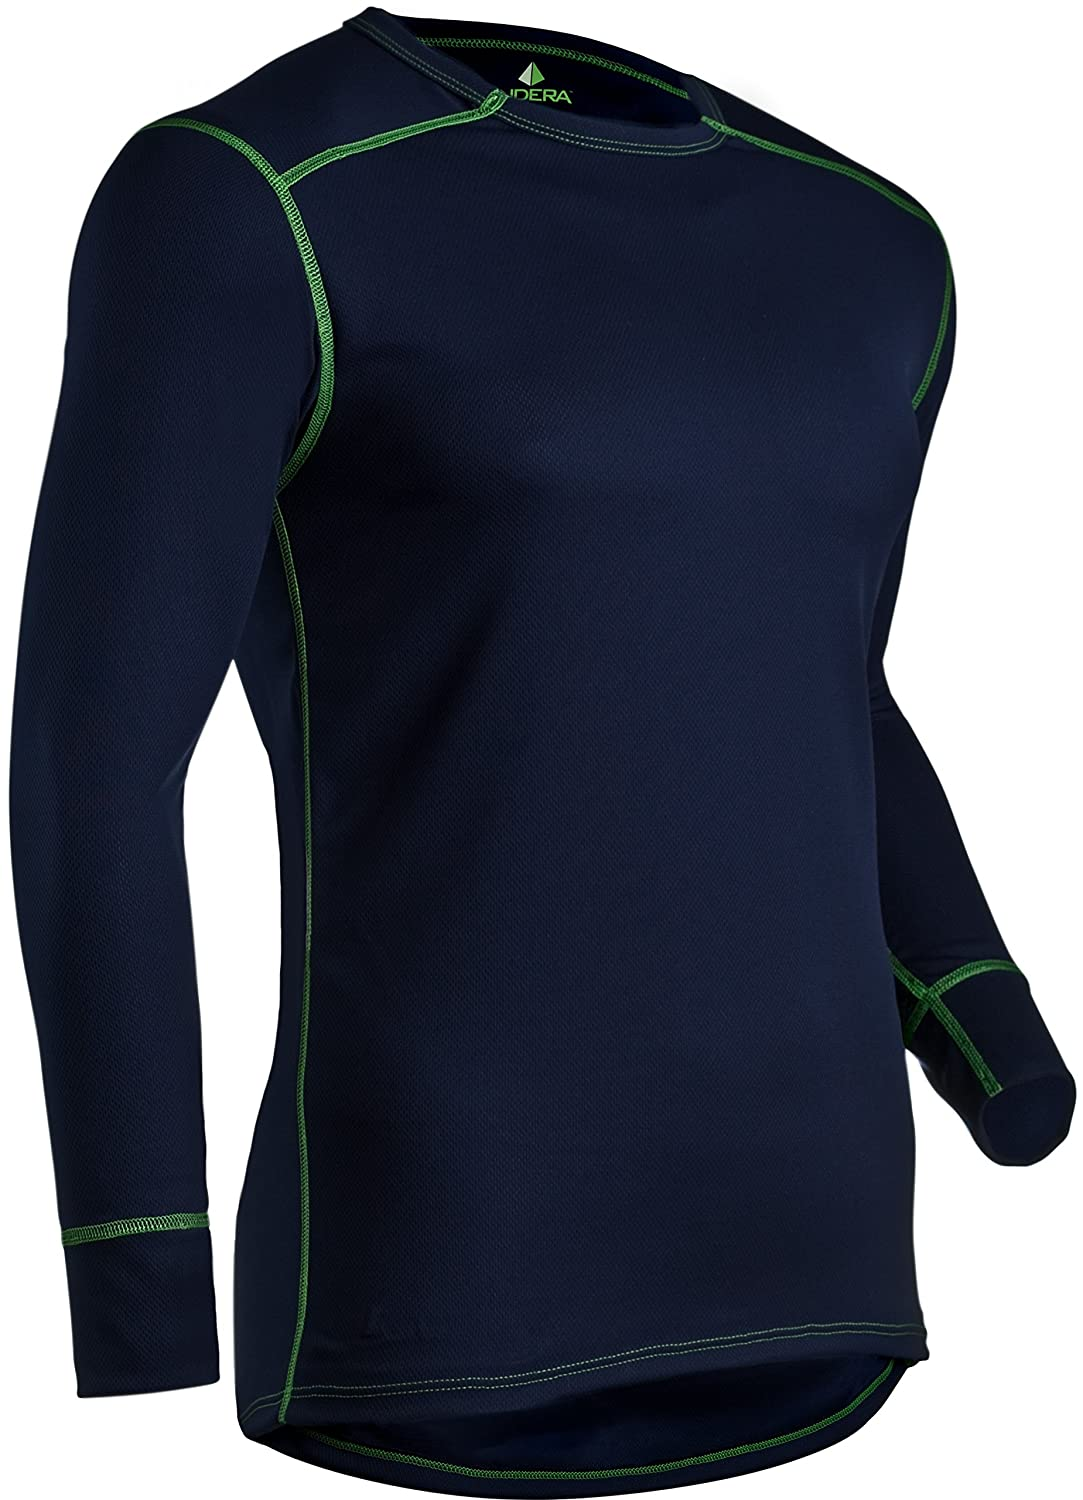 Indera Men's Mesh Knit Performance Thermal Underwear Top with Silvadur